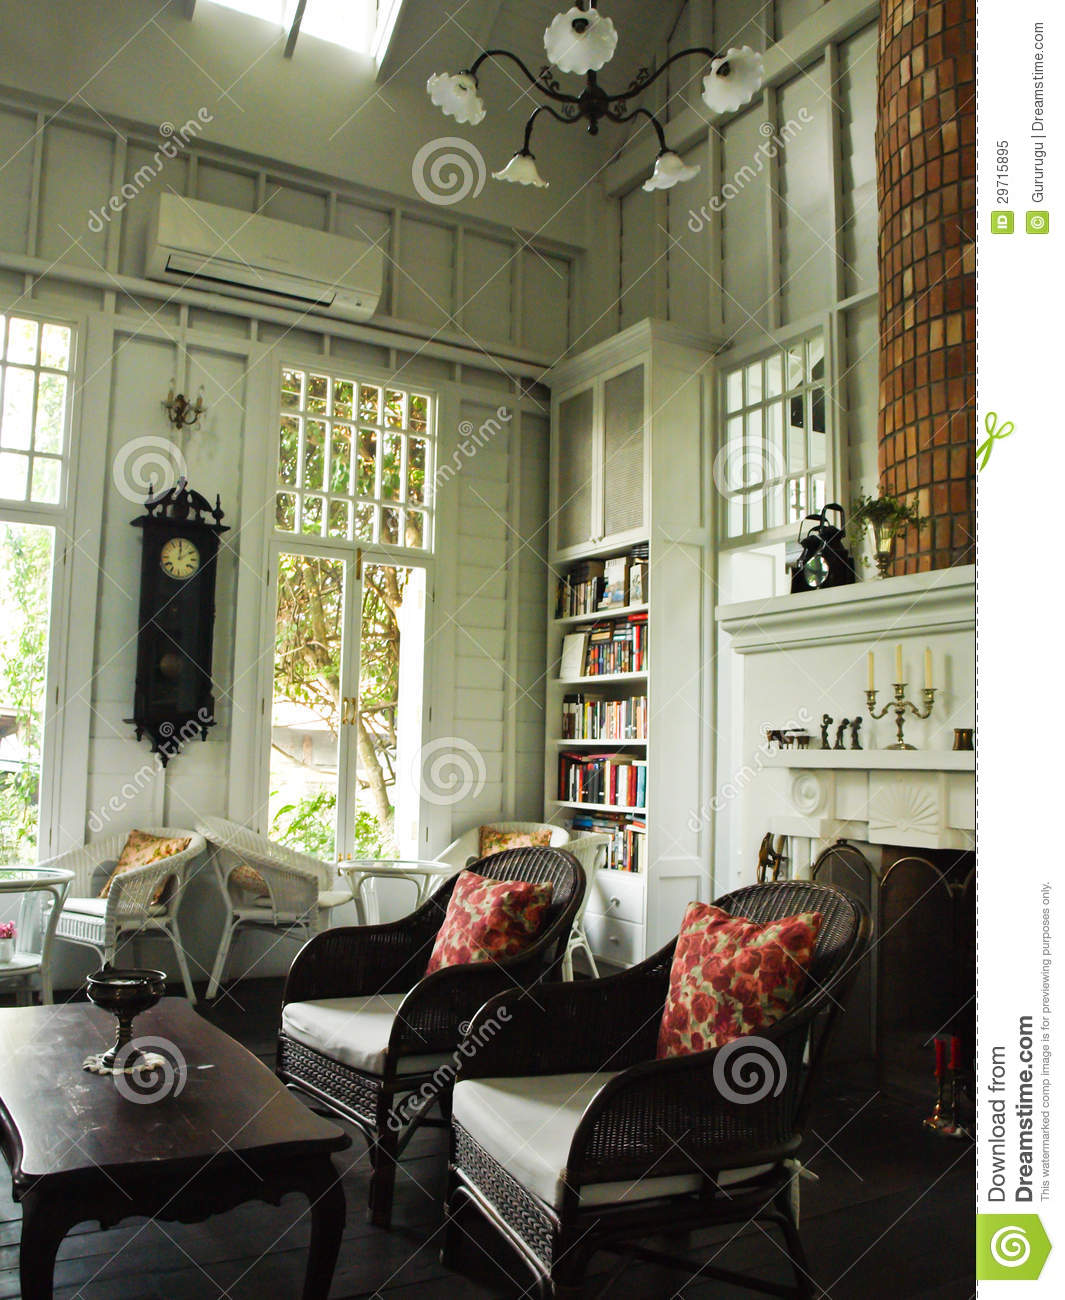 An interior of white english cottage room stock image image of house beautiful 29715895 - Decoration interieur anglais ...